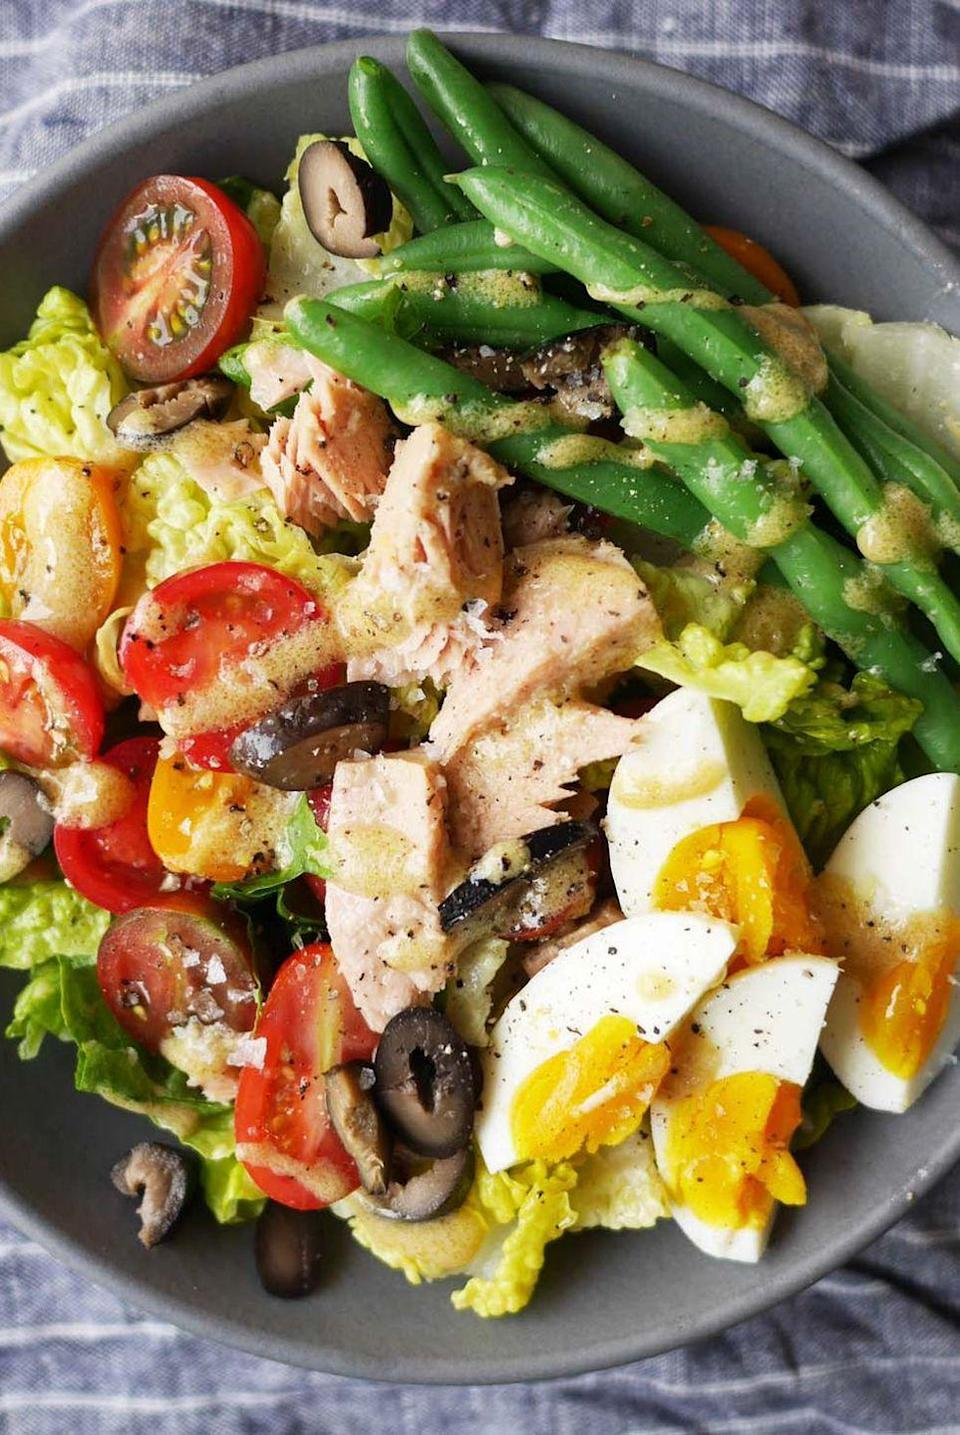 """<p>An easy twist on a classic dish, this chopped salad features hard-boiled eggs, tomatoes, tuna, and olives for a filling dish. </p><p><strong><em>Get the recipe at <a href=""""https://www.delish.com/cooking/recipe-ideas/recipes/a42758/best-nicoise-salad-recipe/"""" rel=""""nofollow noopener"""" target=""""_blank"""" data-ylk=""""slk:Delish"""" class=""""link rapid-noclick-resp"""">Delish</a>.</em></strong></p>"""